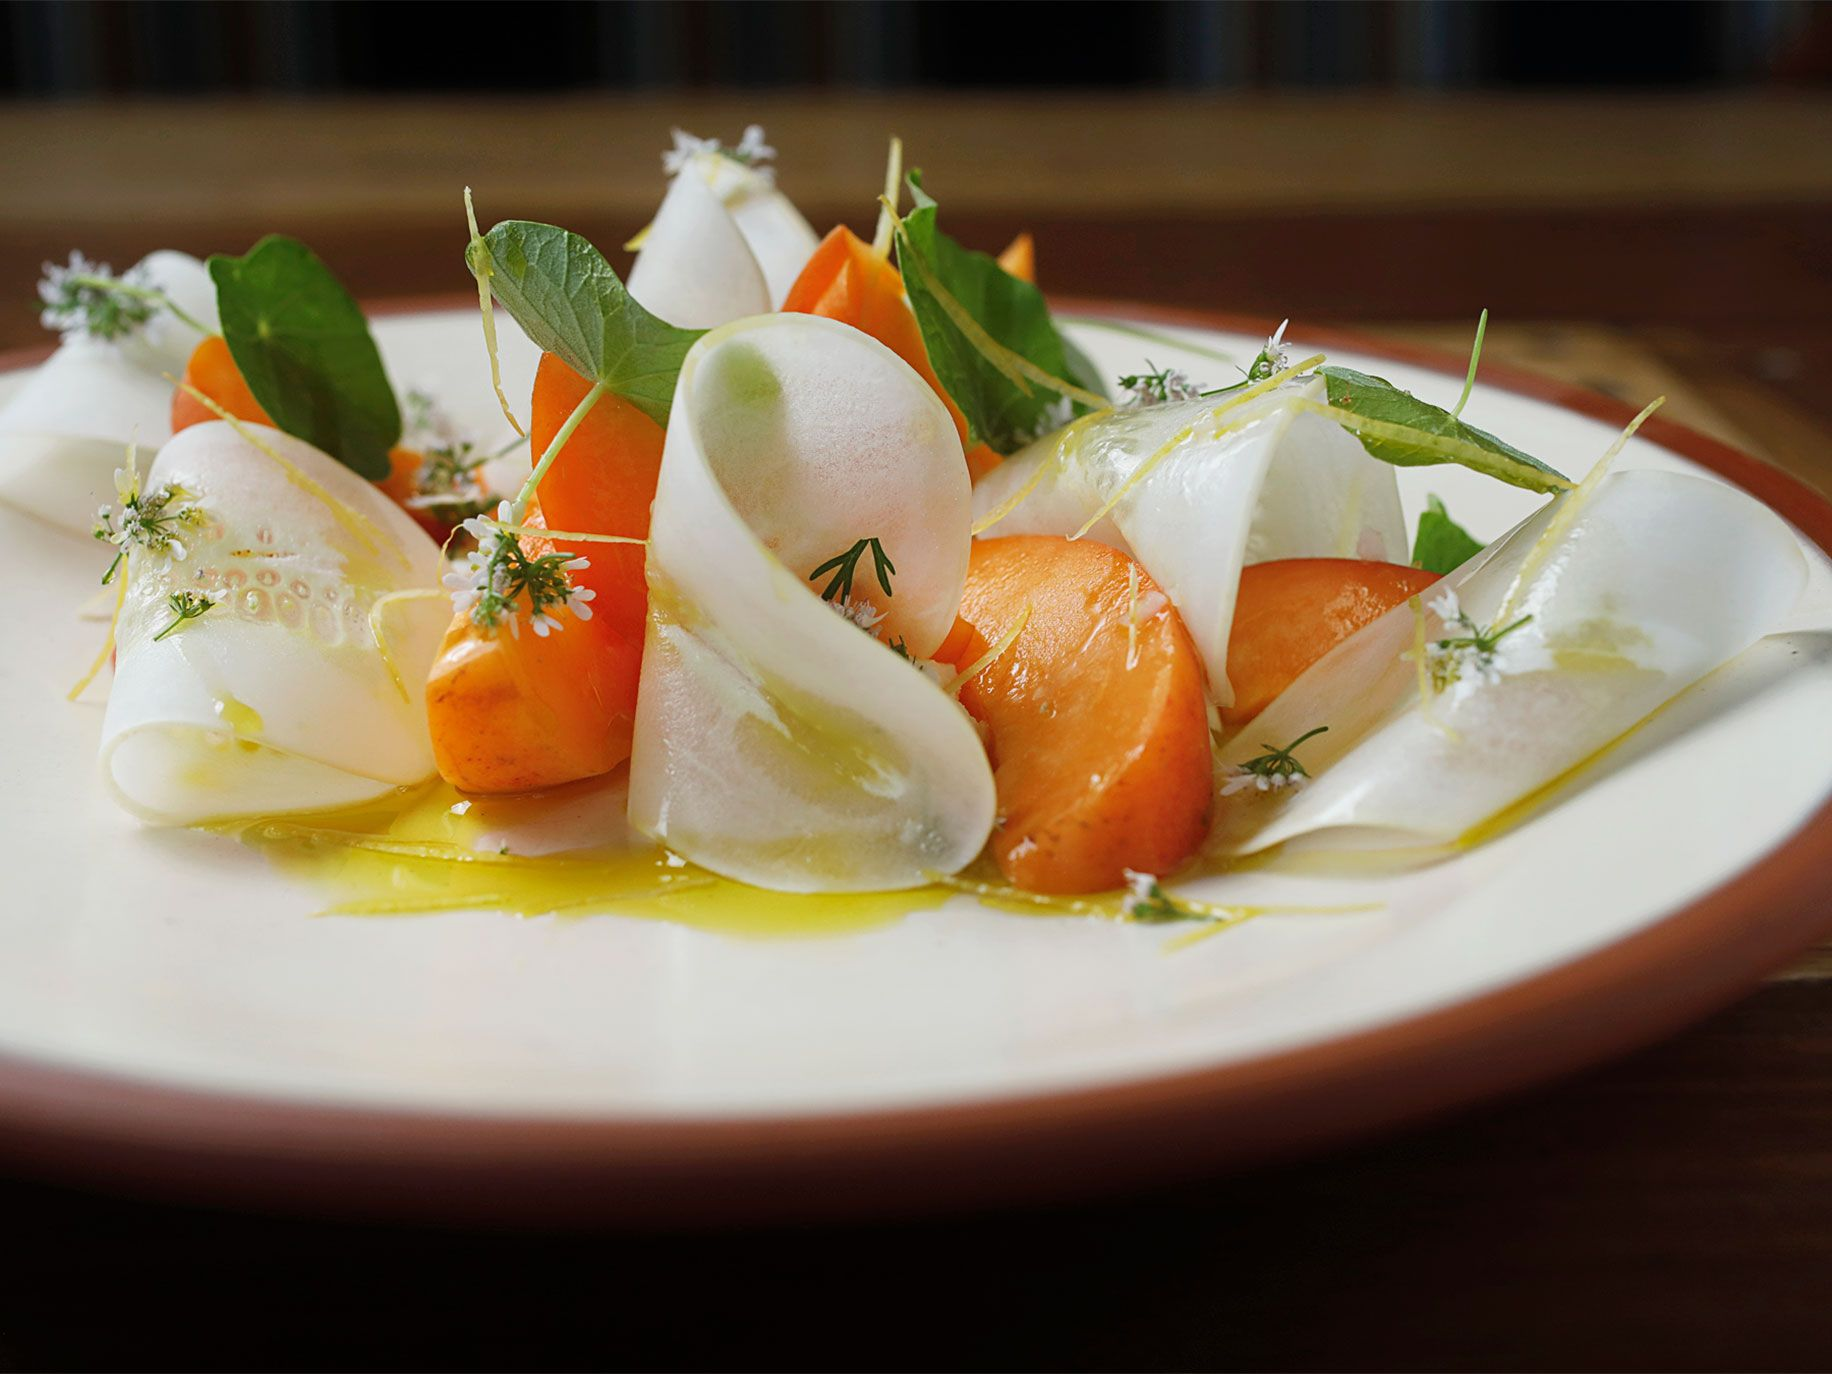 Apricot salad with laychee (Boontling for milk and a fresh cheese), nasturtium, and cilantro.